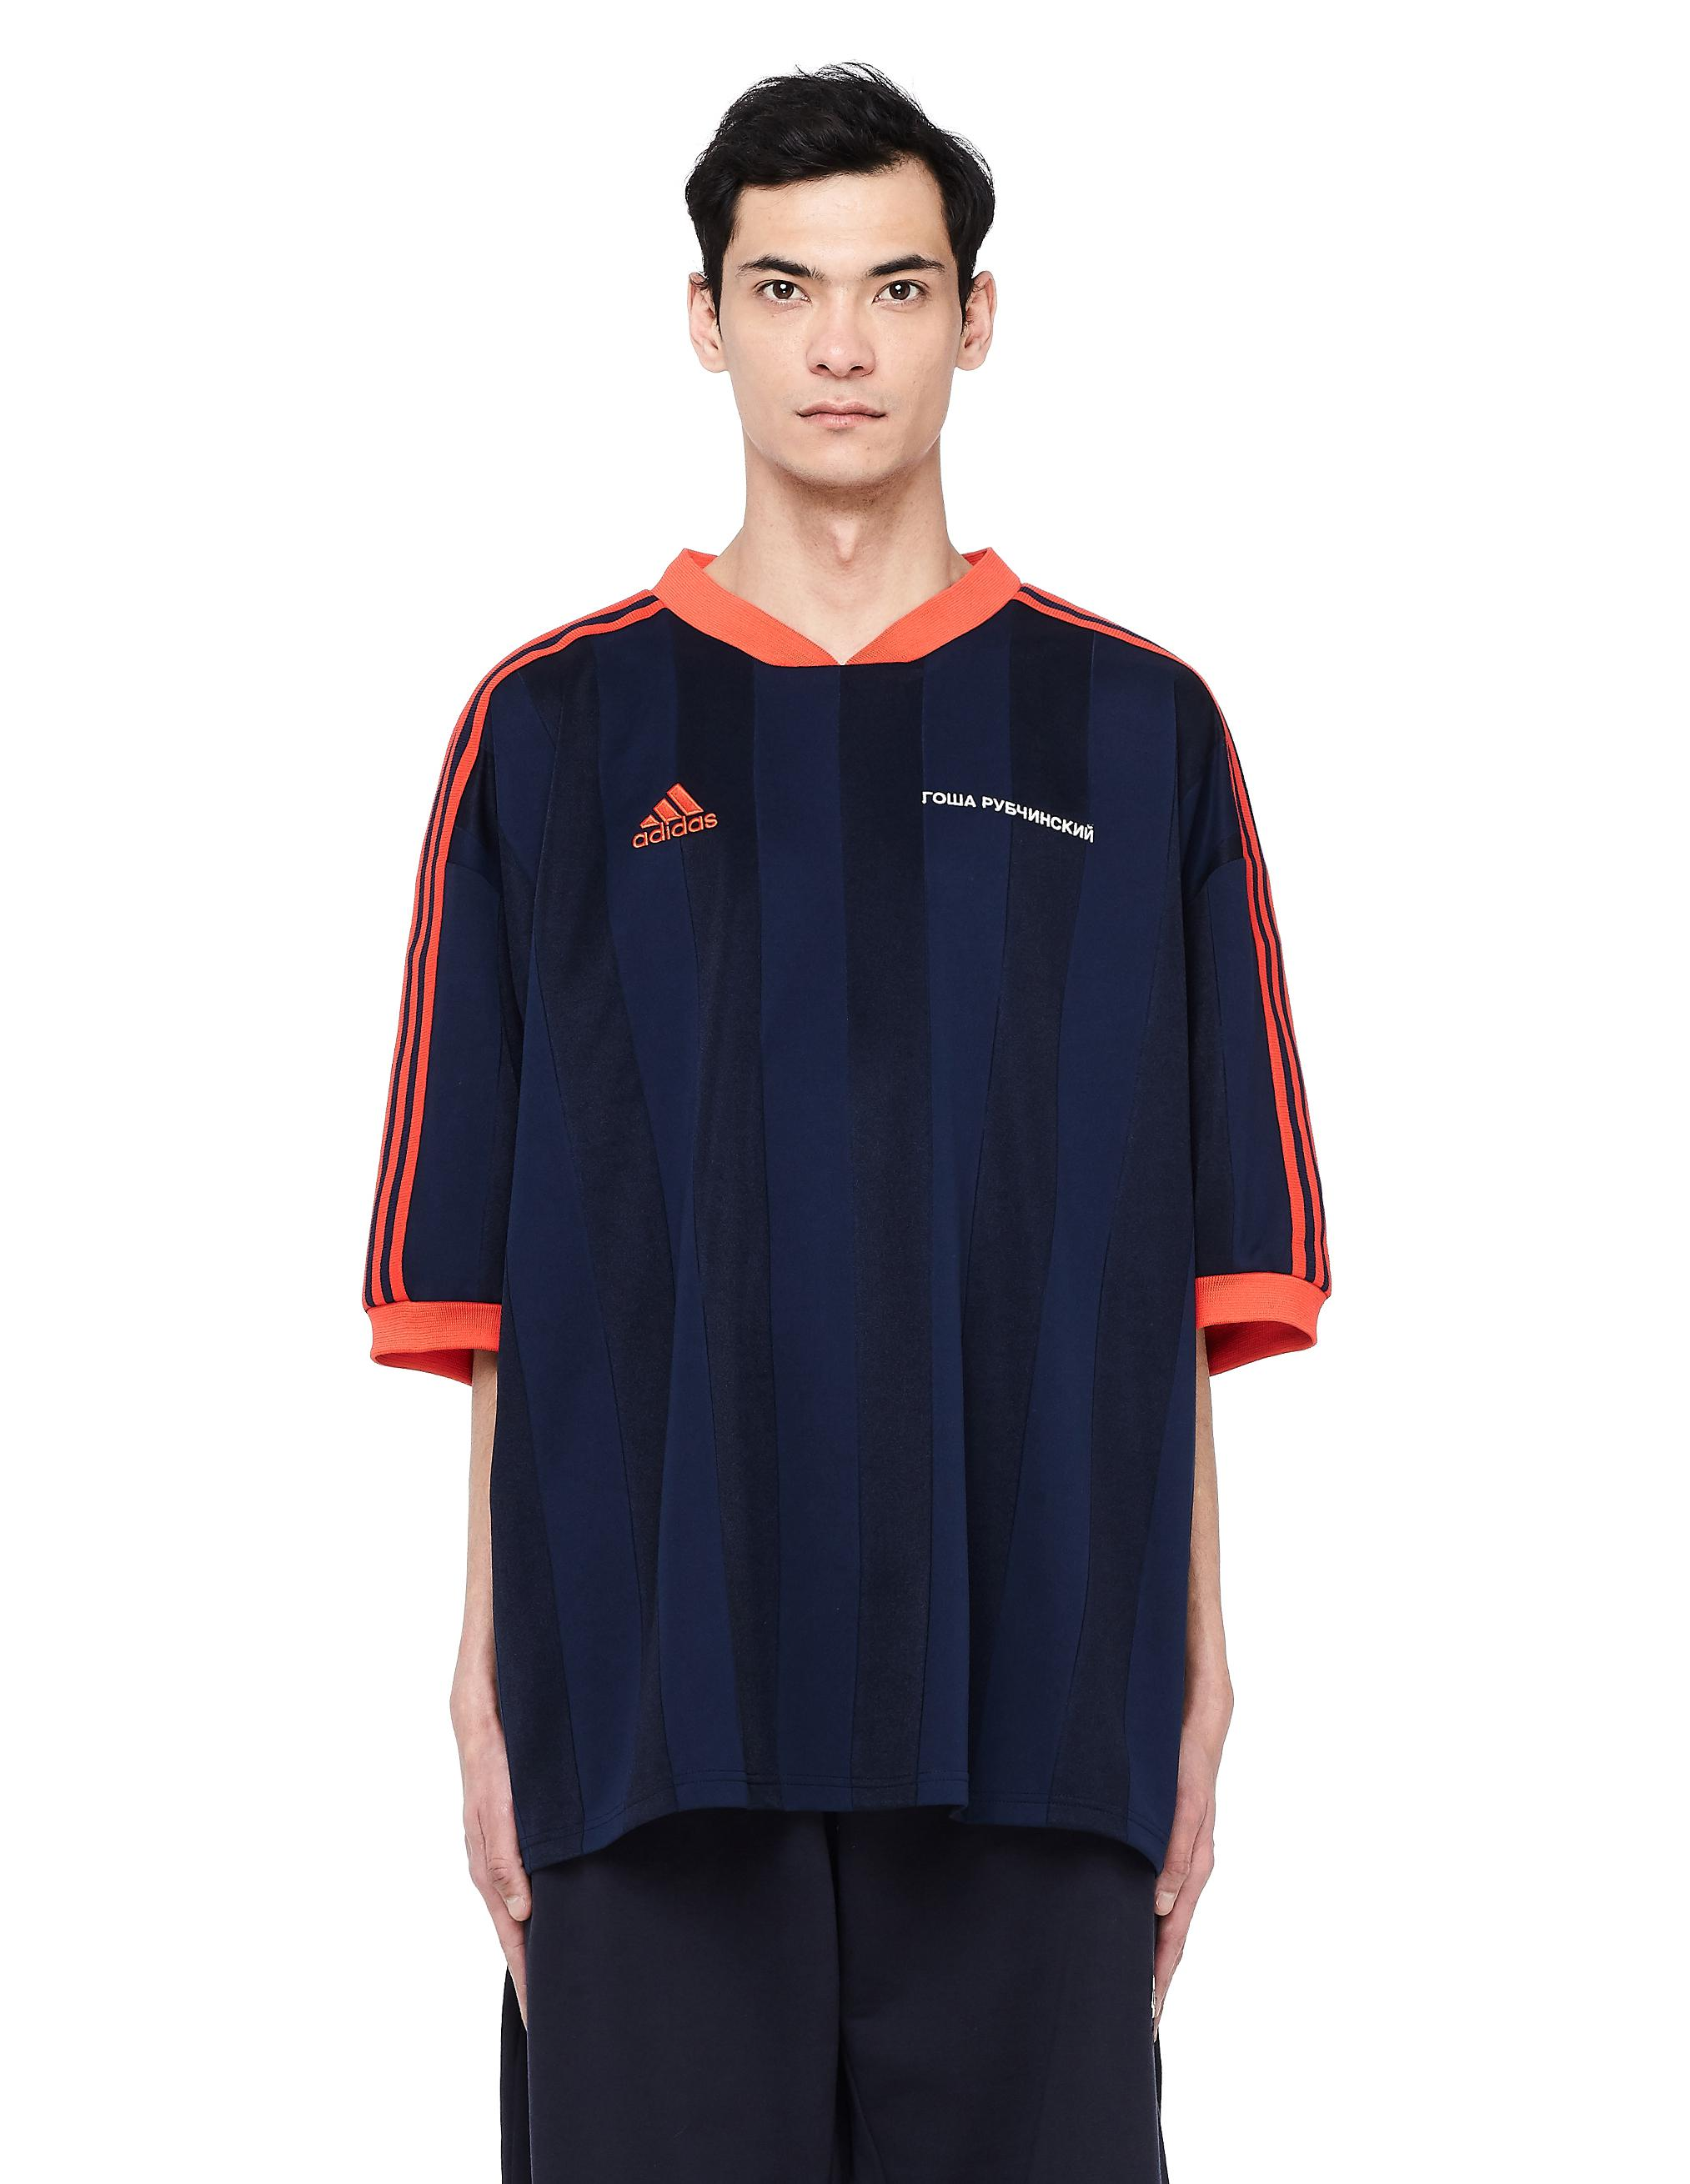 c0ec19d4b Gosha Rubchinskiy Navy Blue Striped Adidas T-shirt in Blue for Men ...